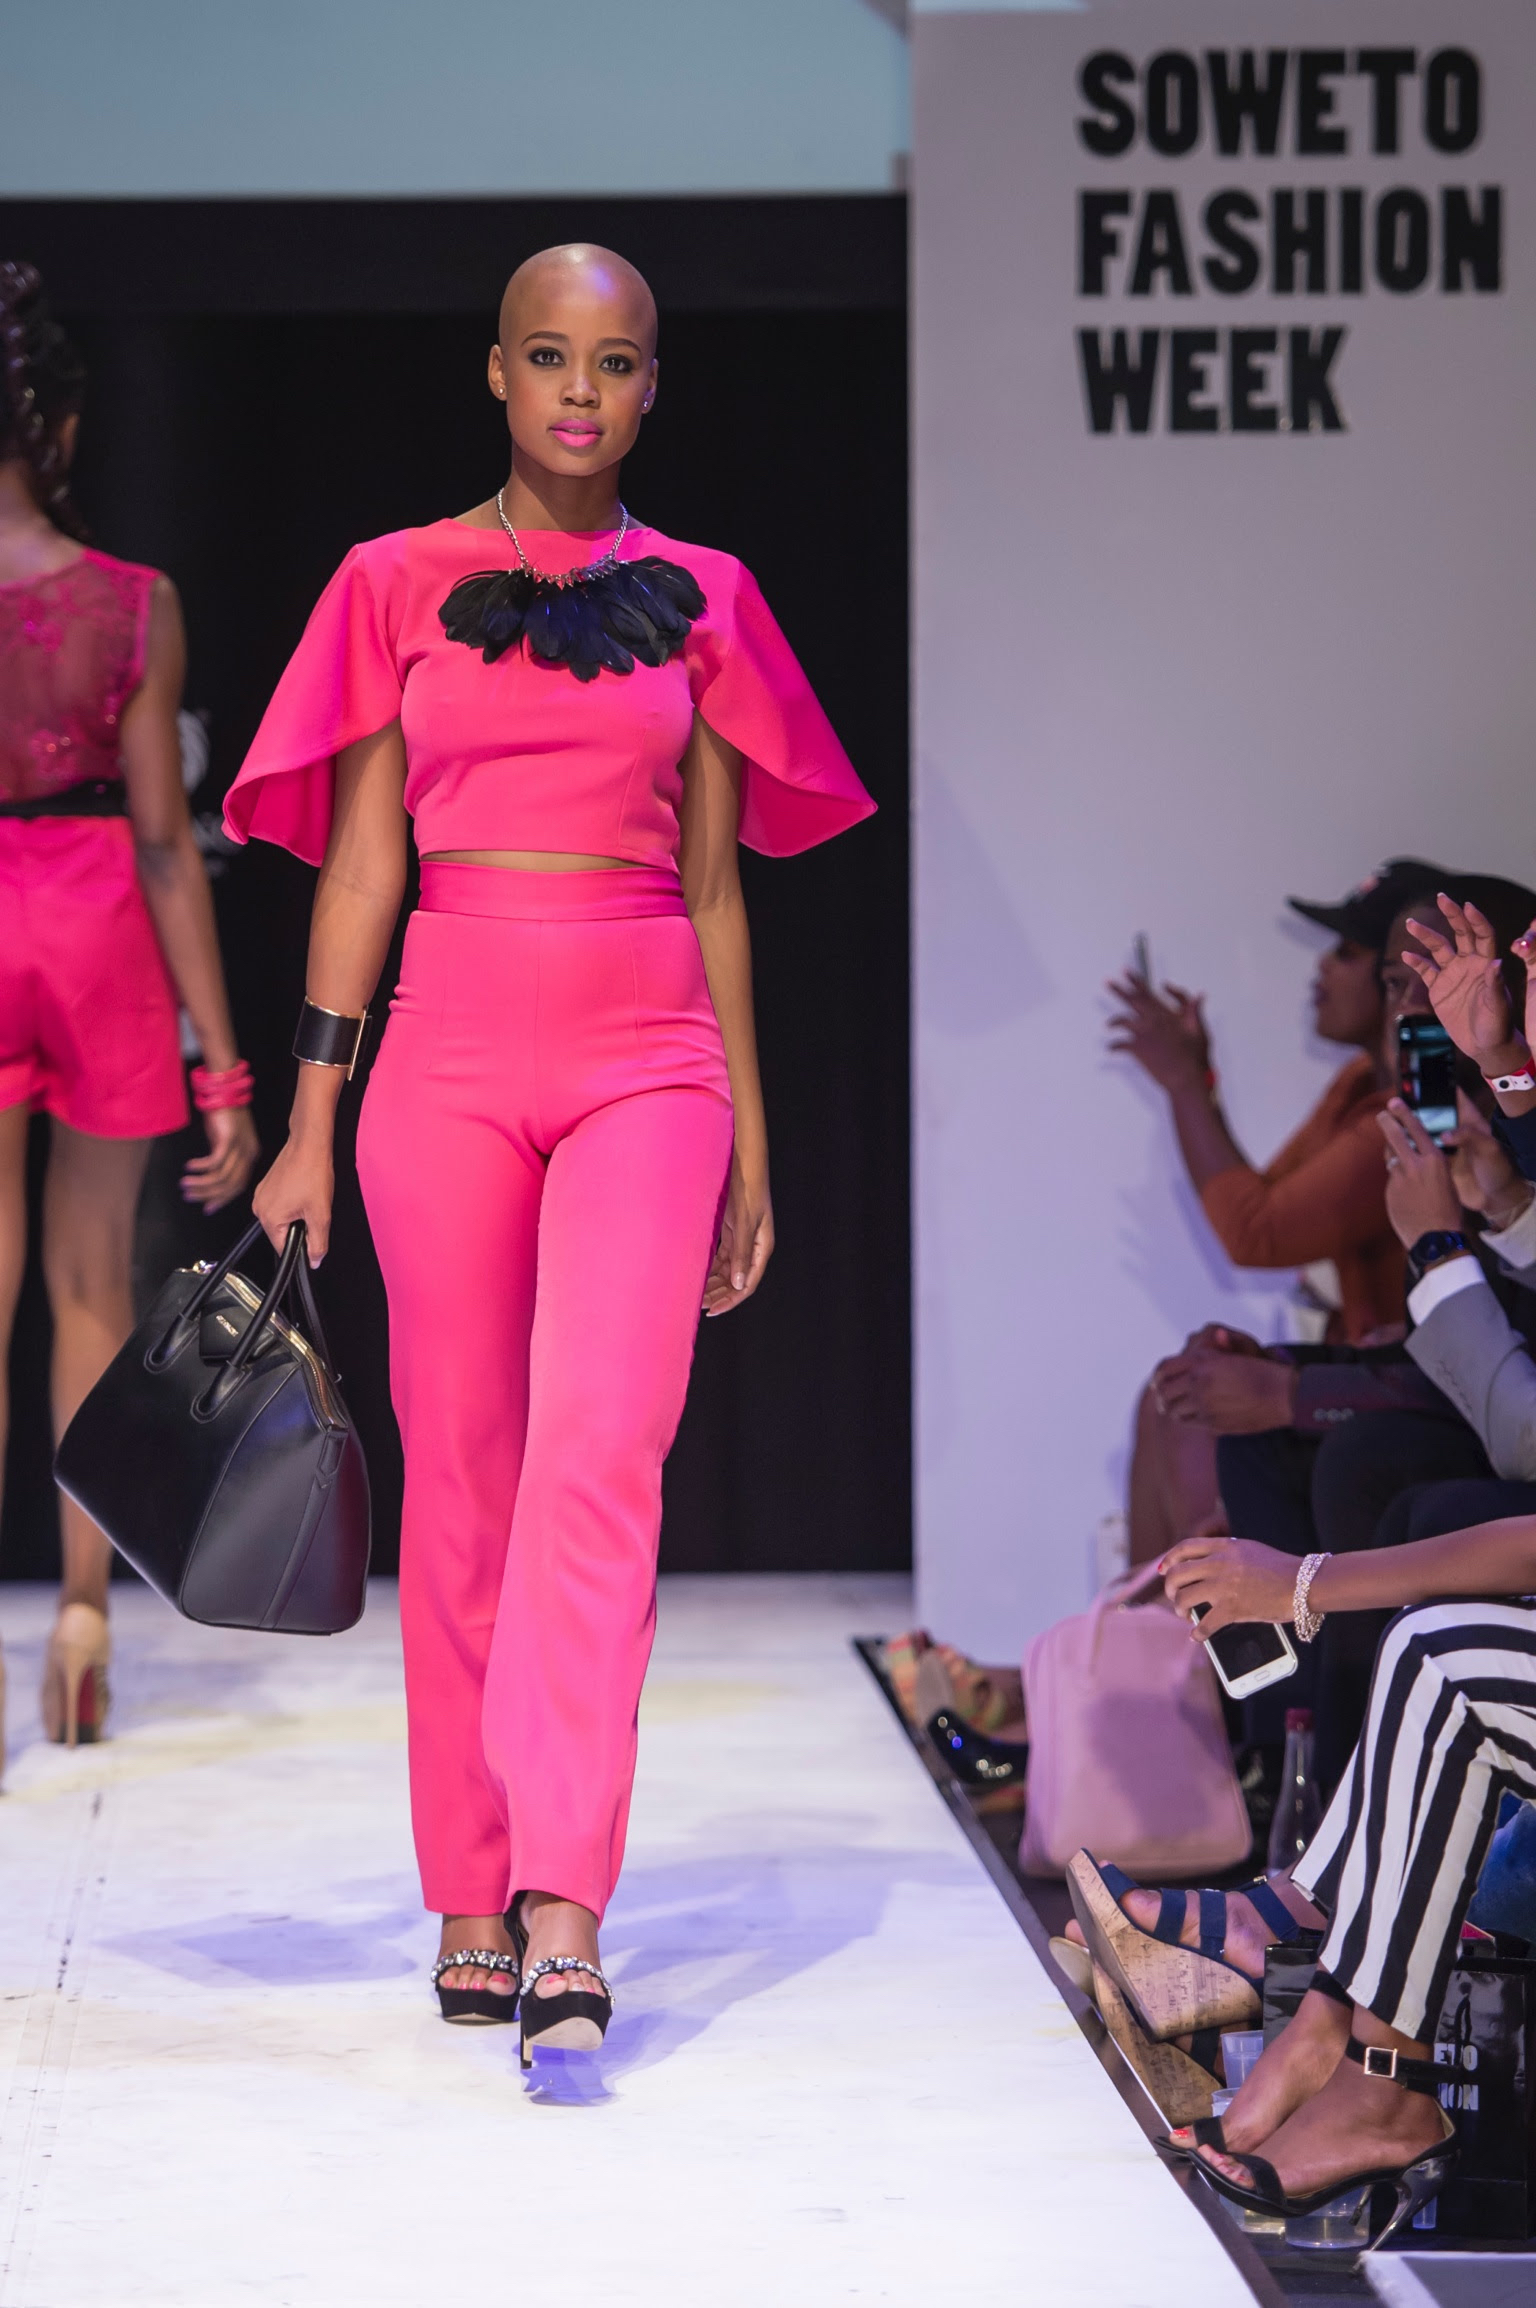 Soweto Fashion Week Copy Mzansi Life Style